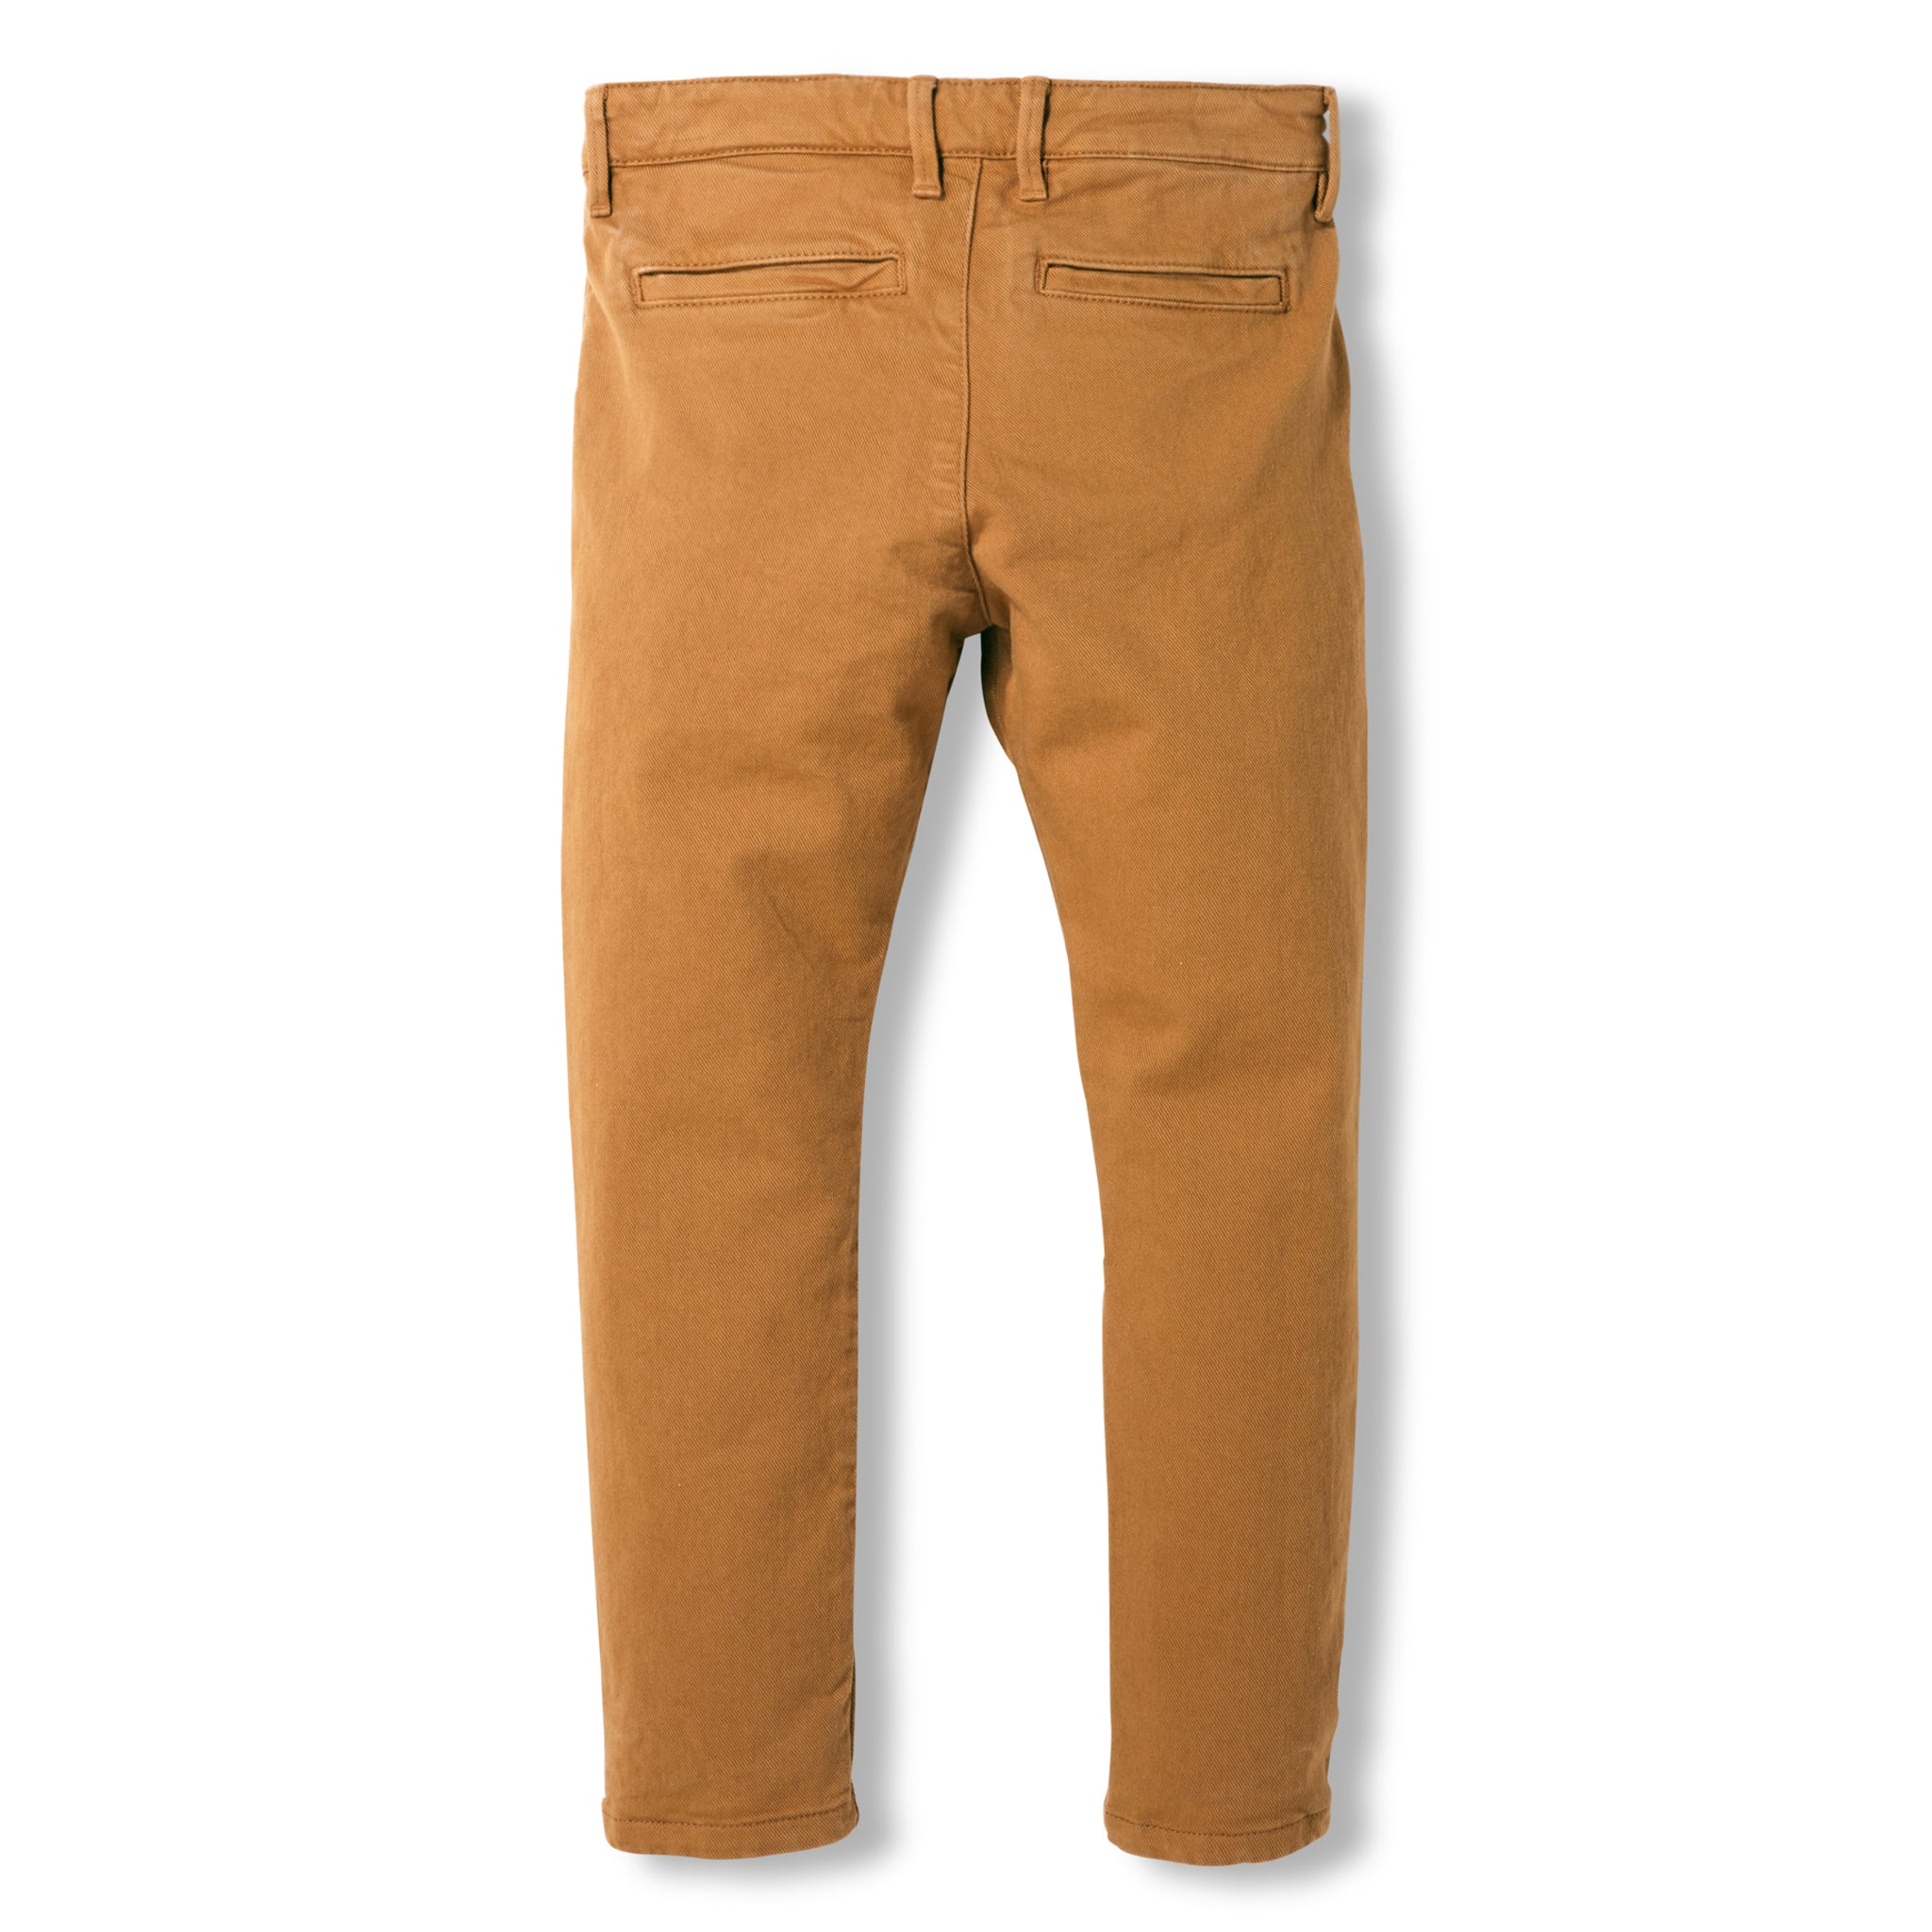 SCOTTY Caramel -  Woven Chino Fit Pants 2